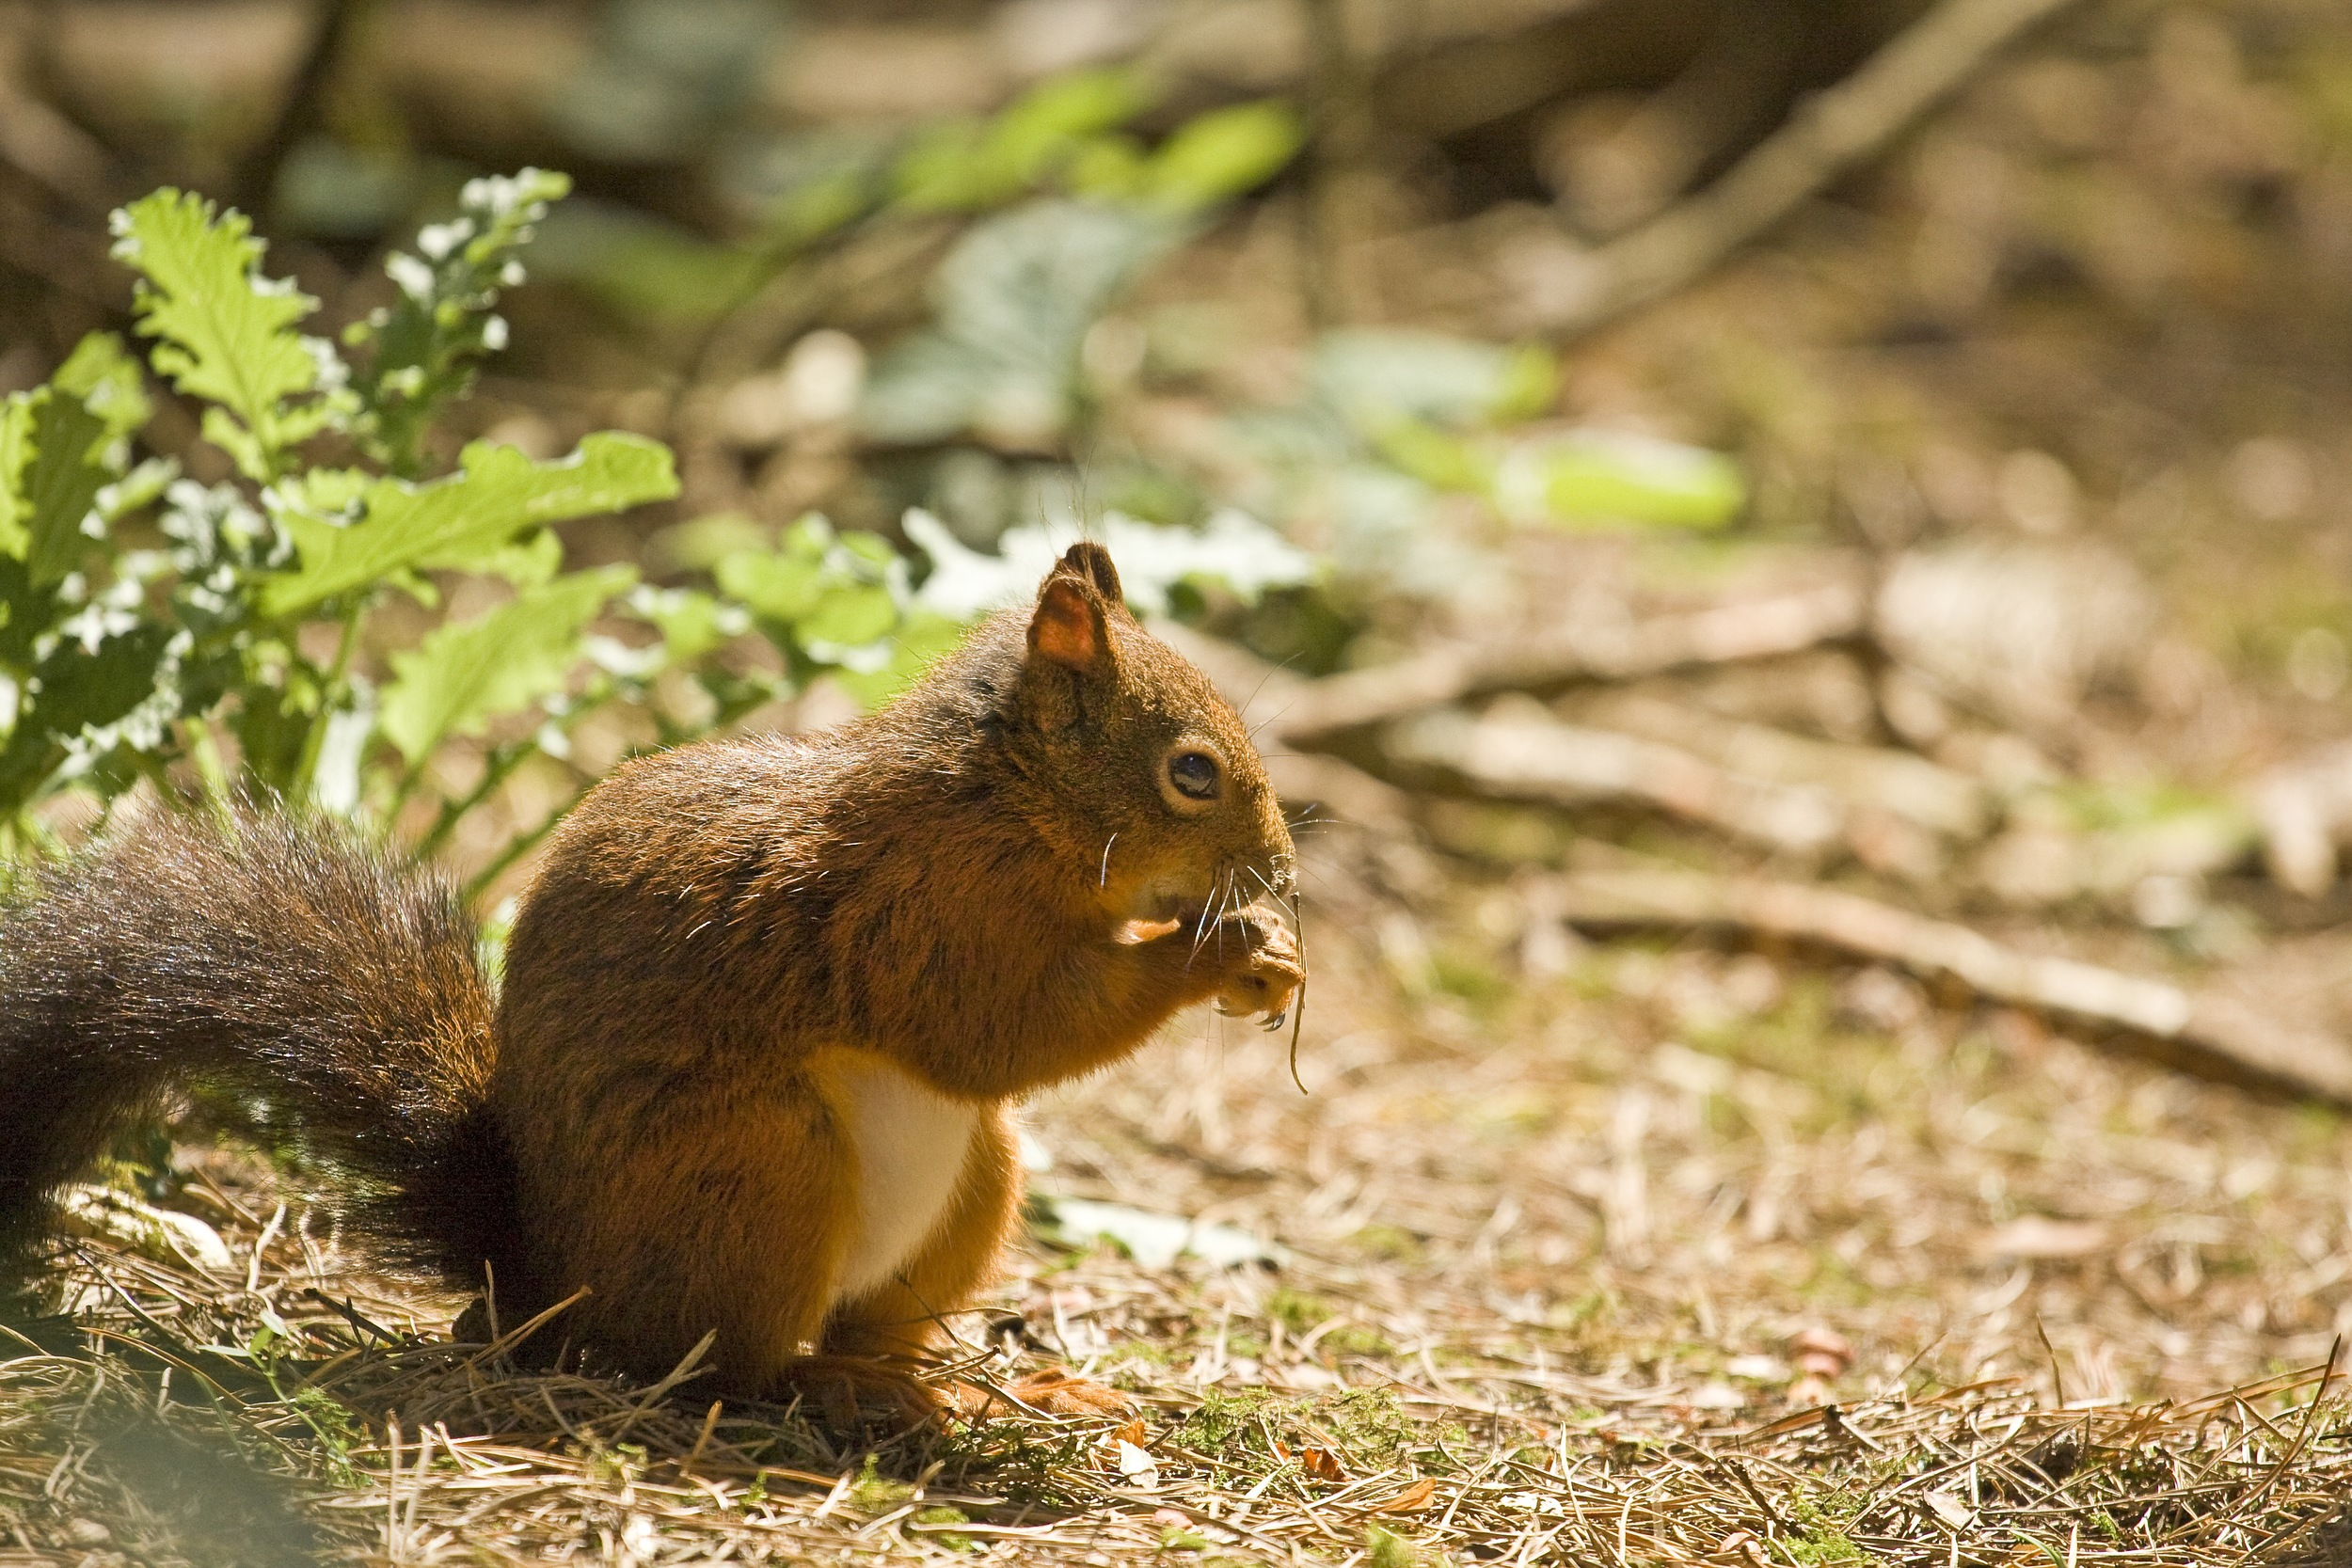 The indigenous squirrel species of our island is in serious threat of extinction and sanctuaries like Formby are incredibly important to their survival.